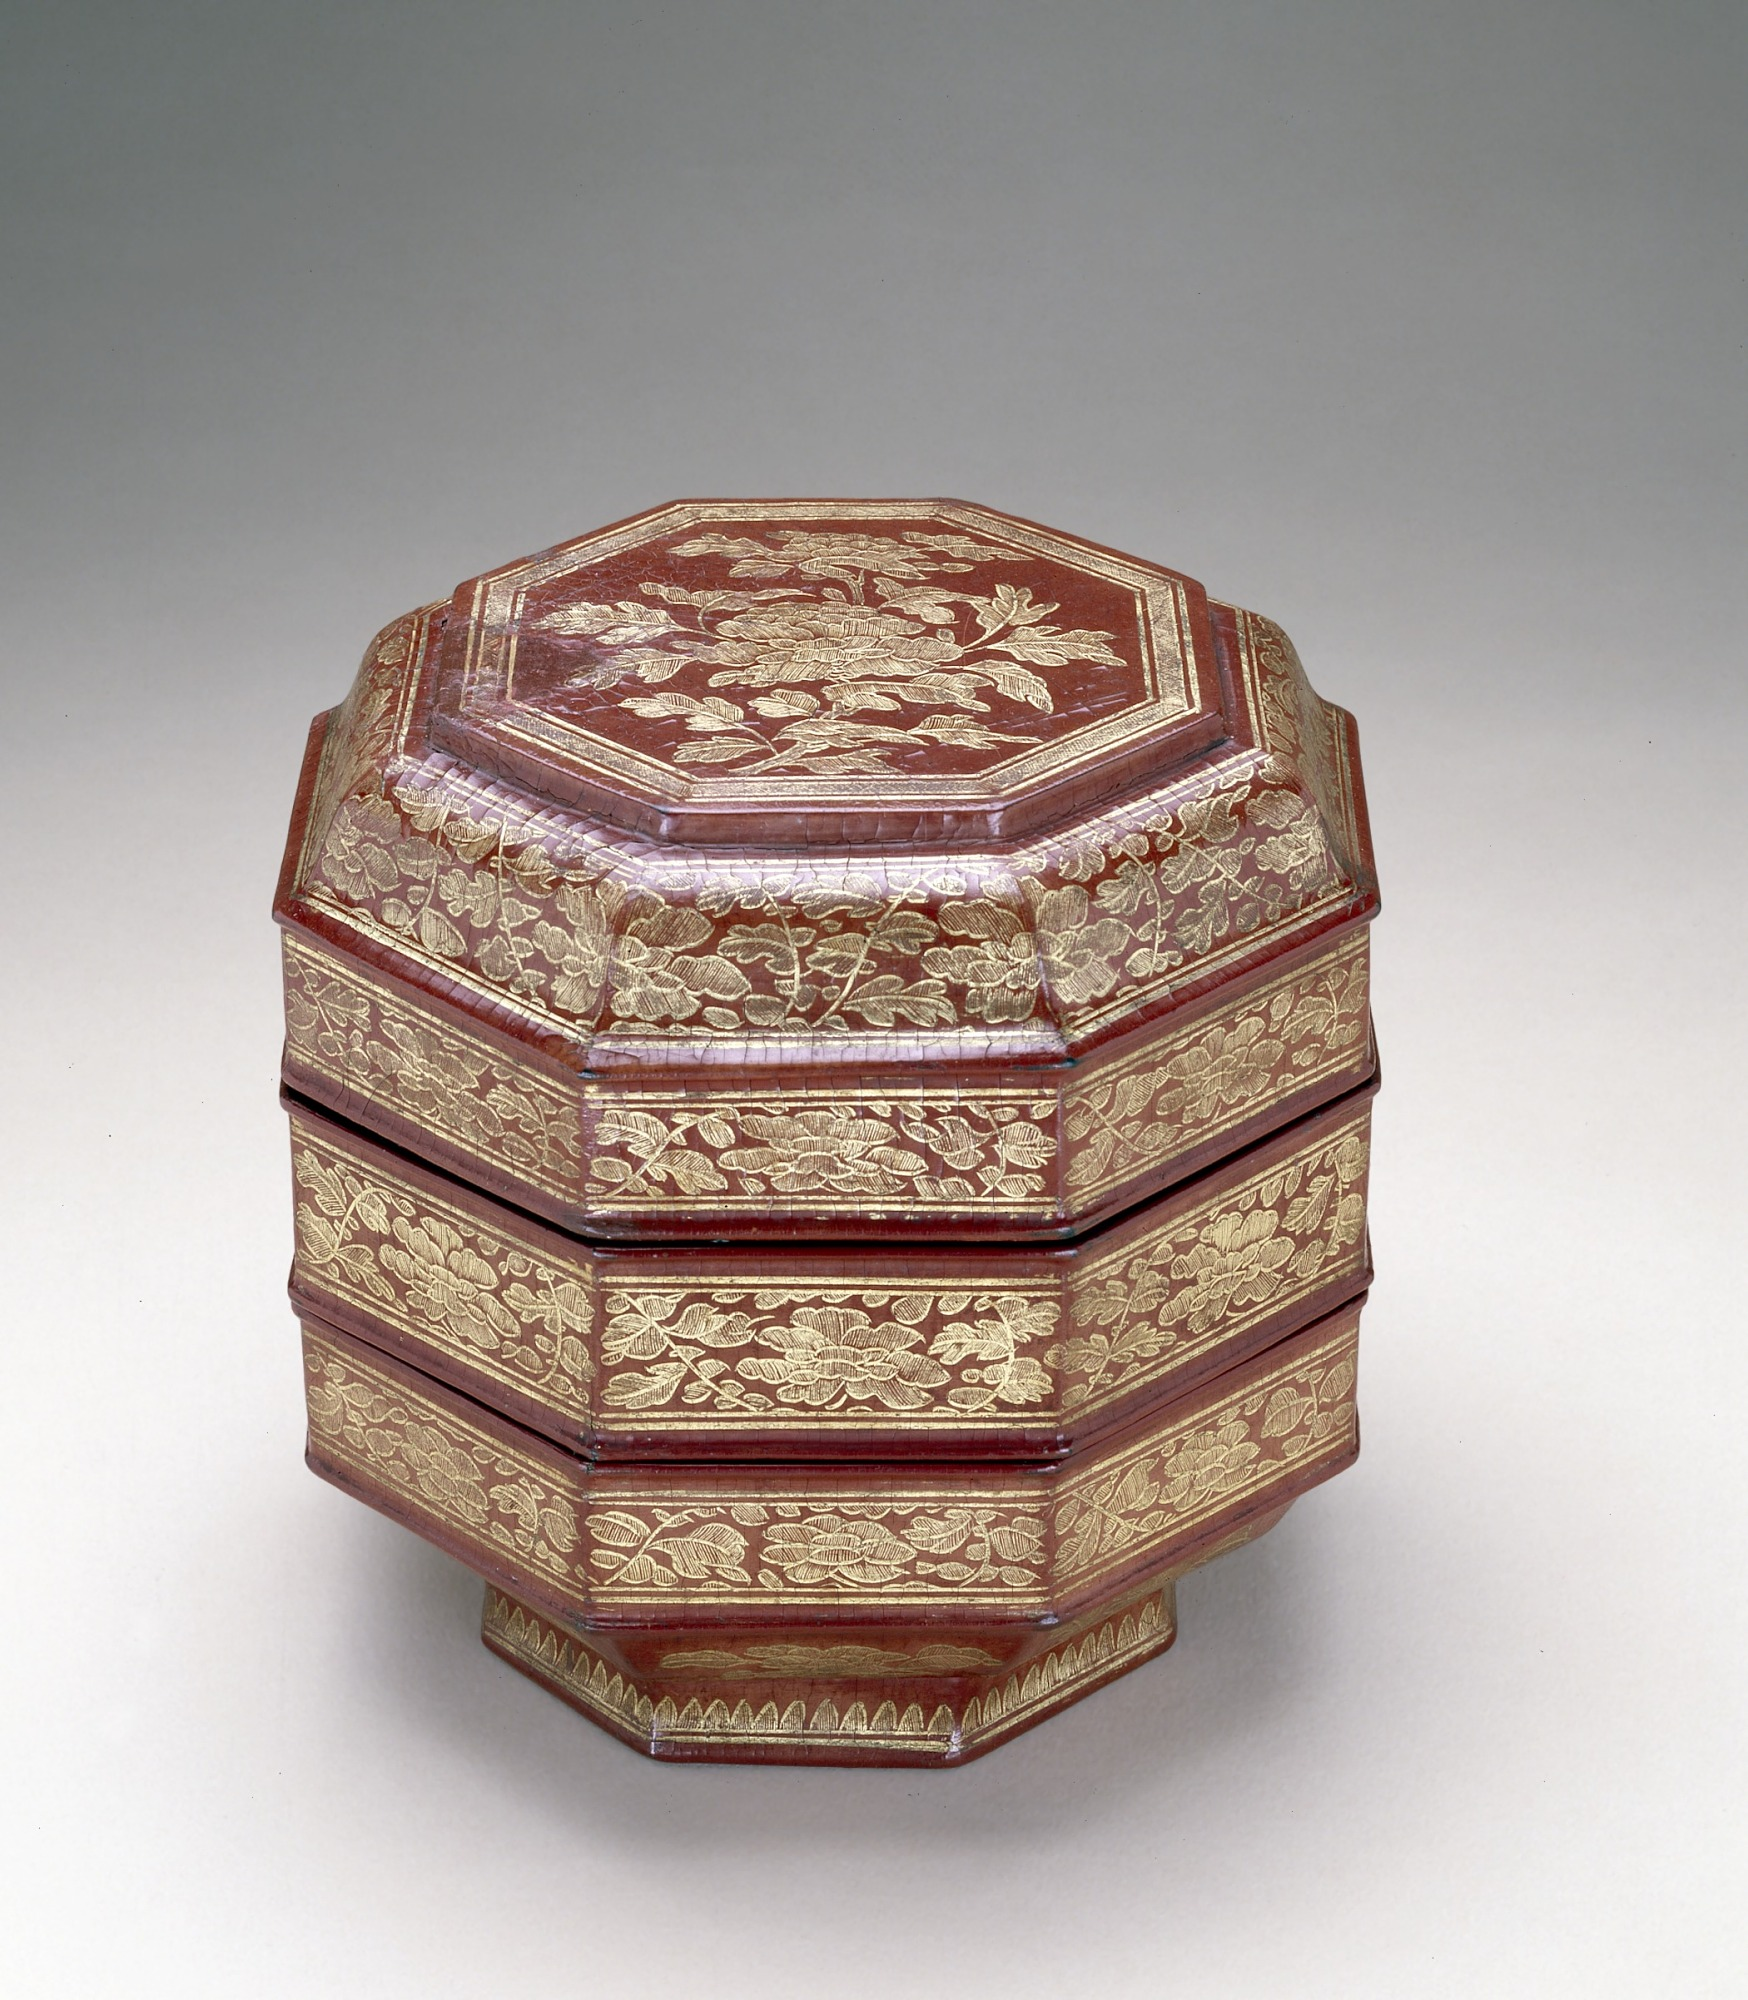 : Three-tiered octagonal food box with peony spray and scrolls